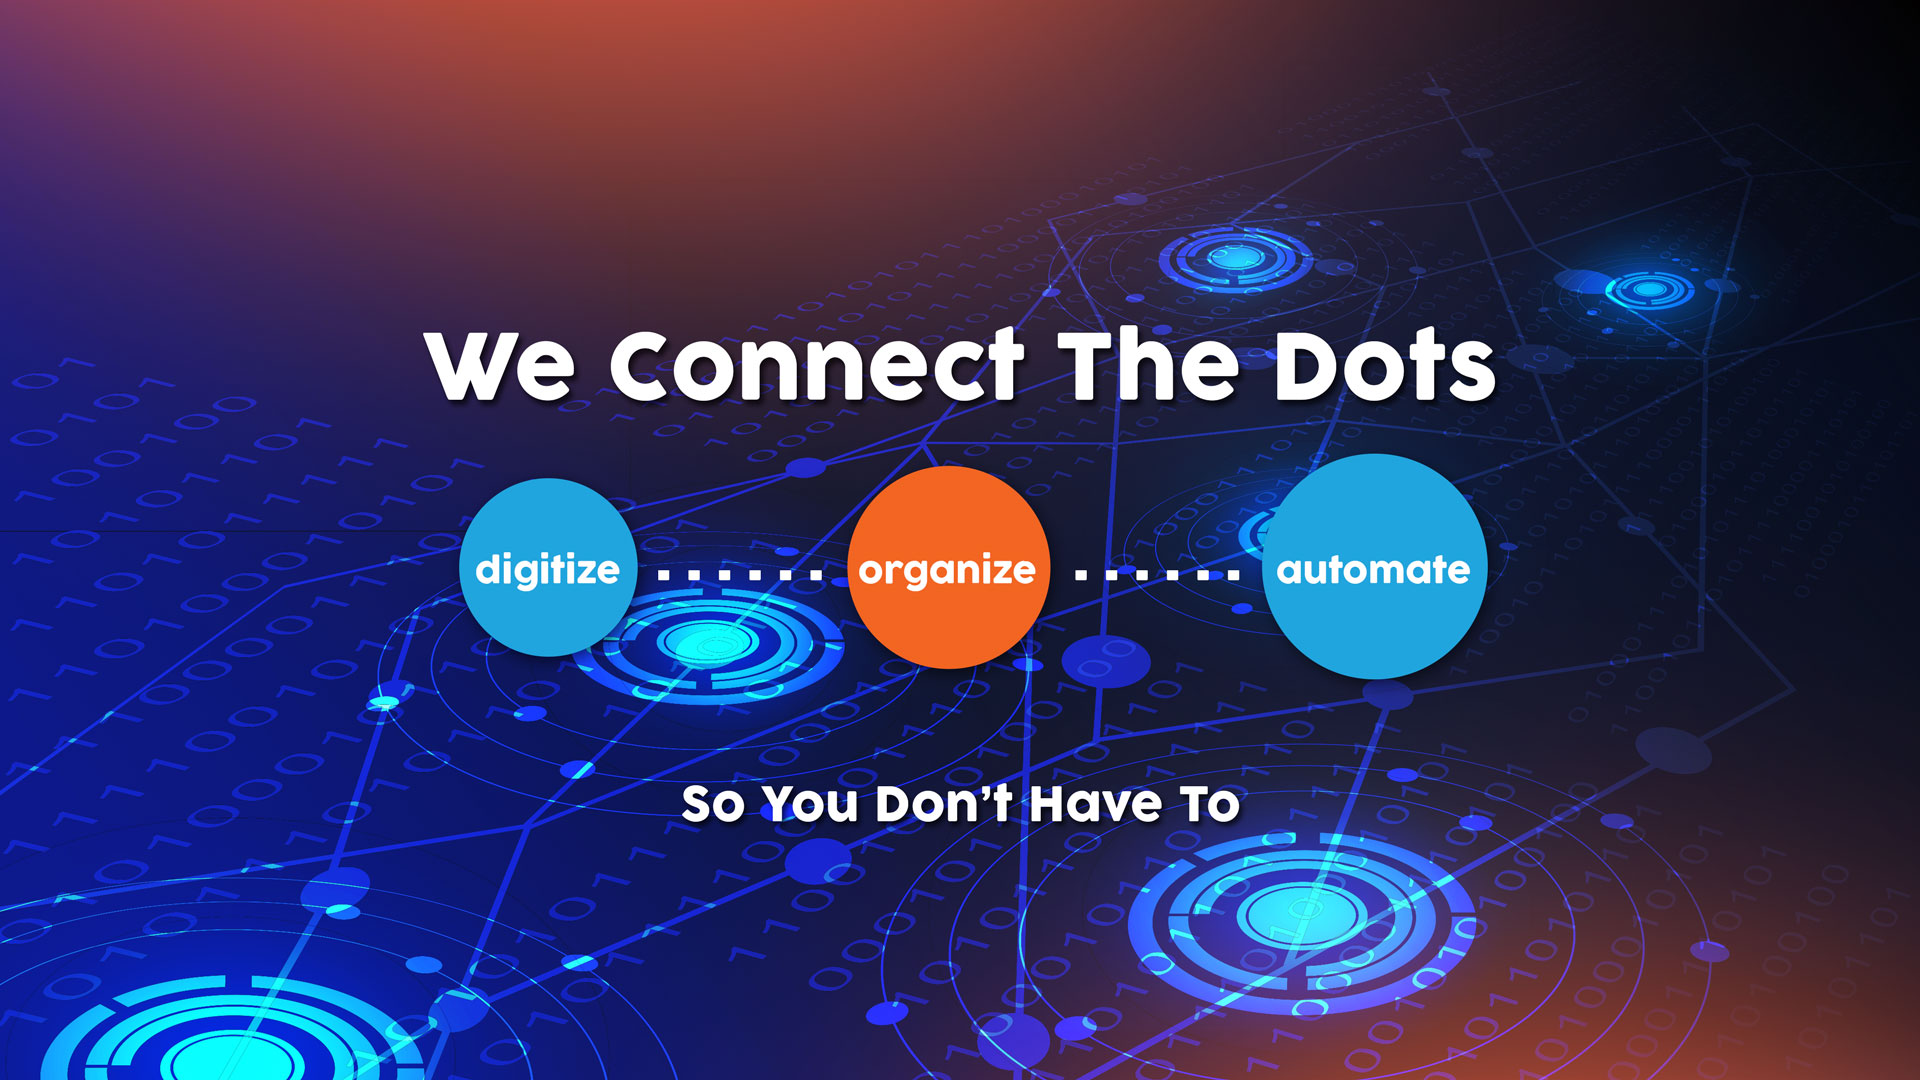 Digitize, Organize, Automate. We connect the dots so you don't have to.